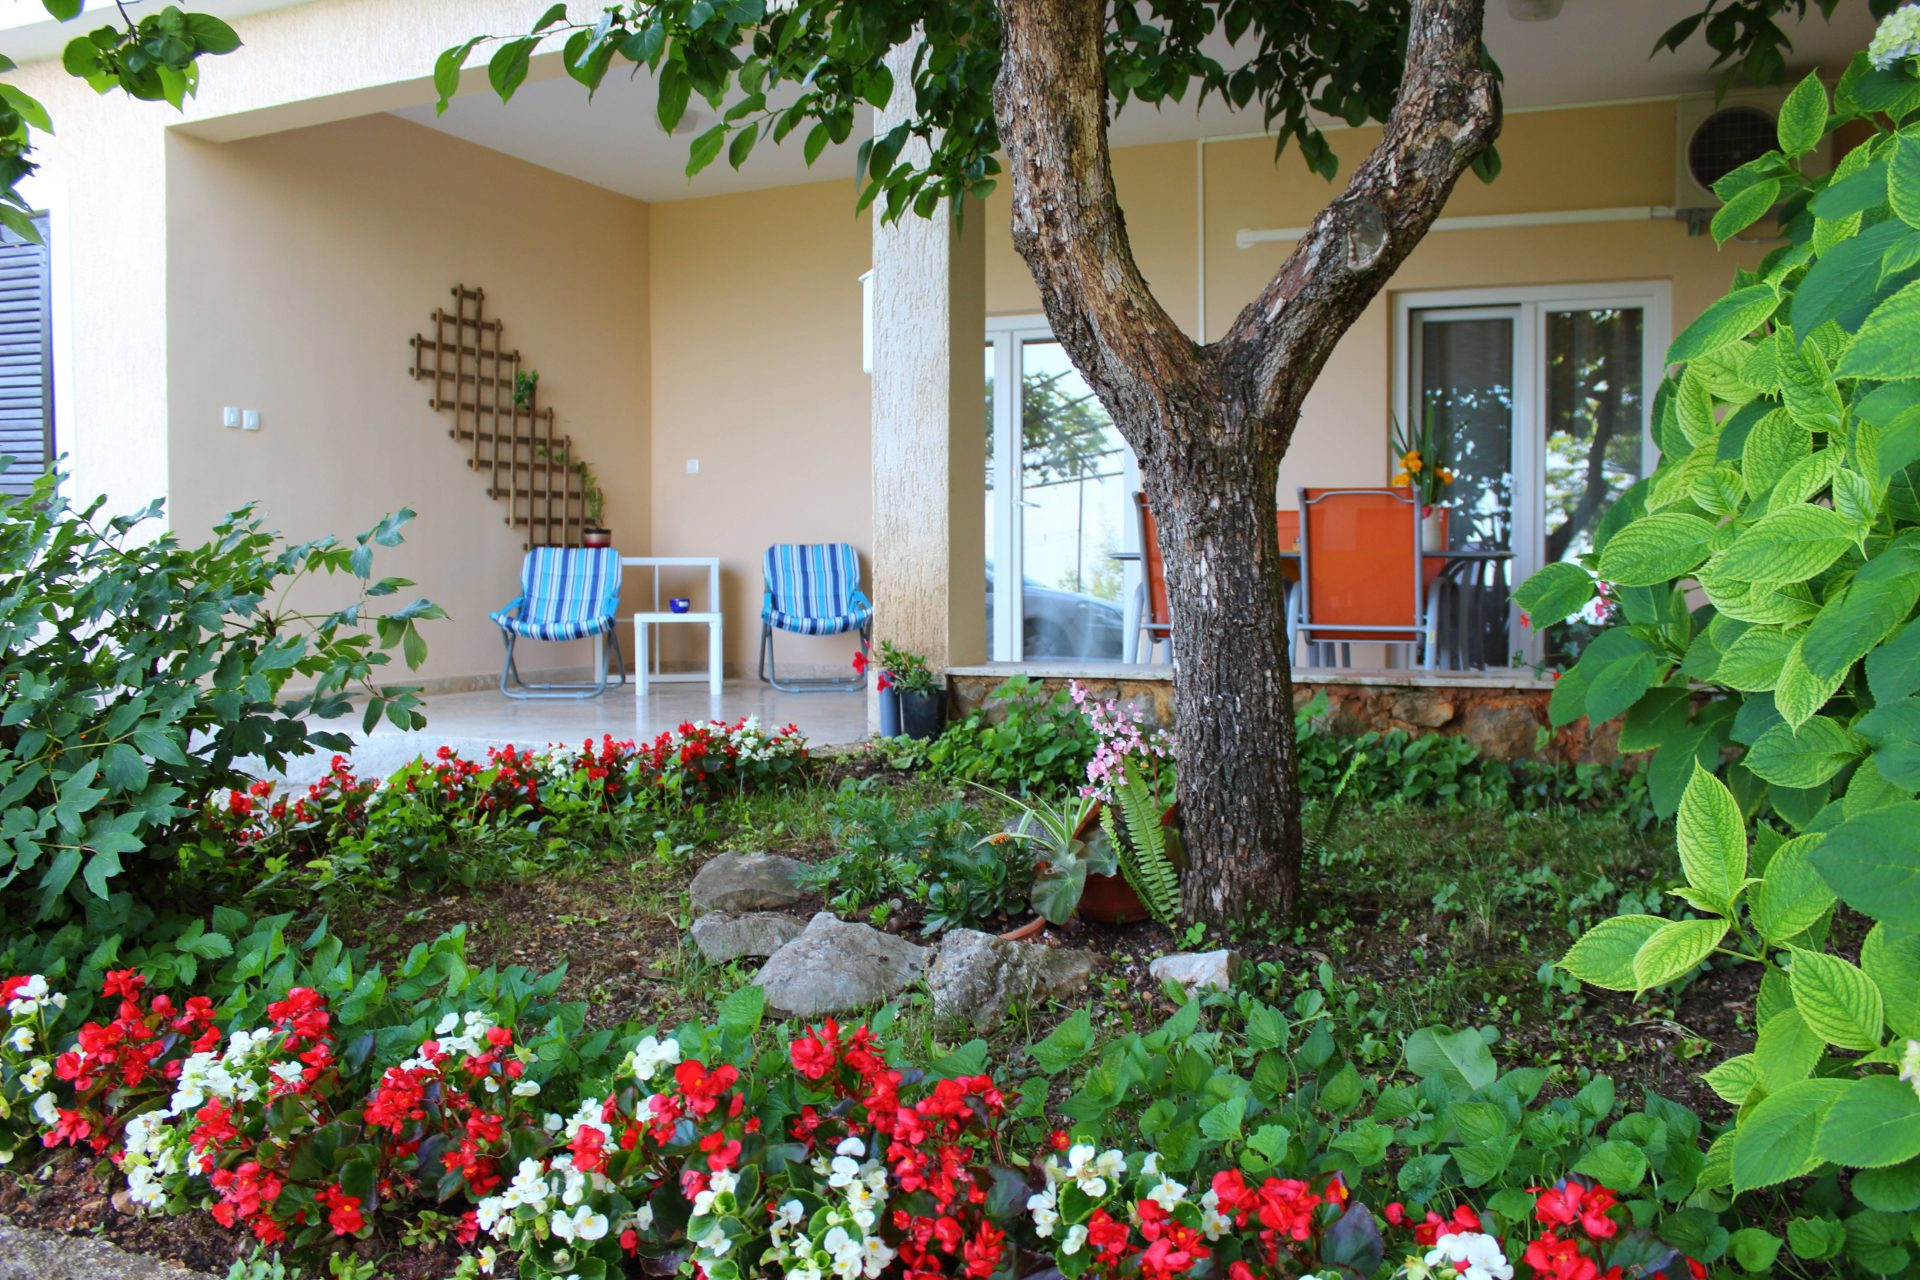 Apartments Basan Lovran-Opatija, apartment 2+2 terrace with garden